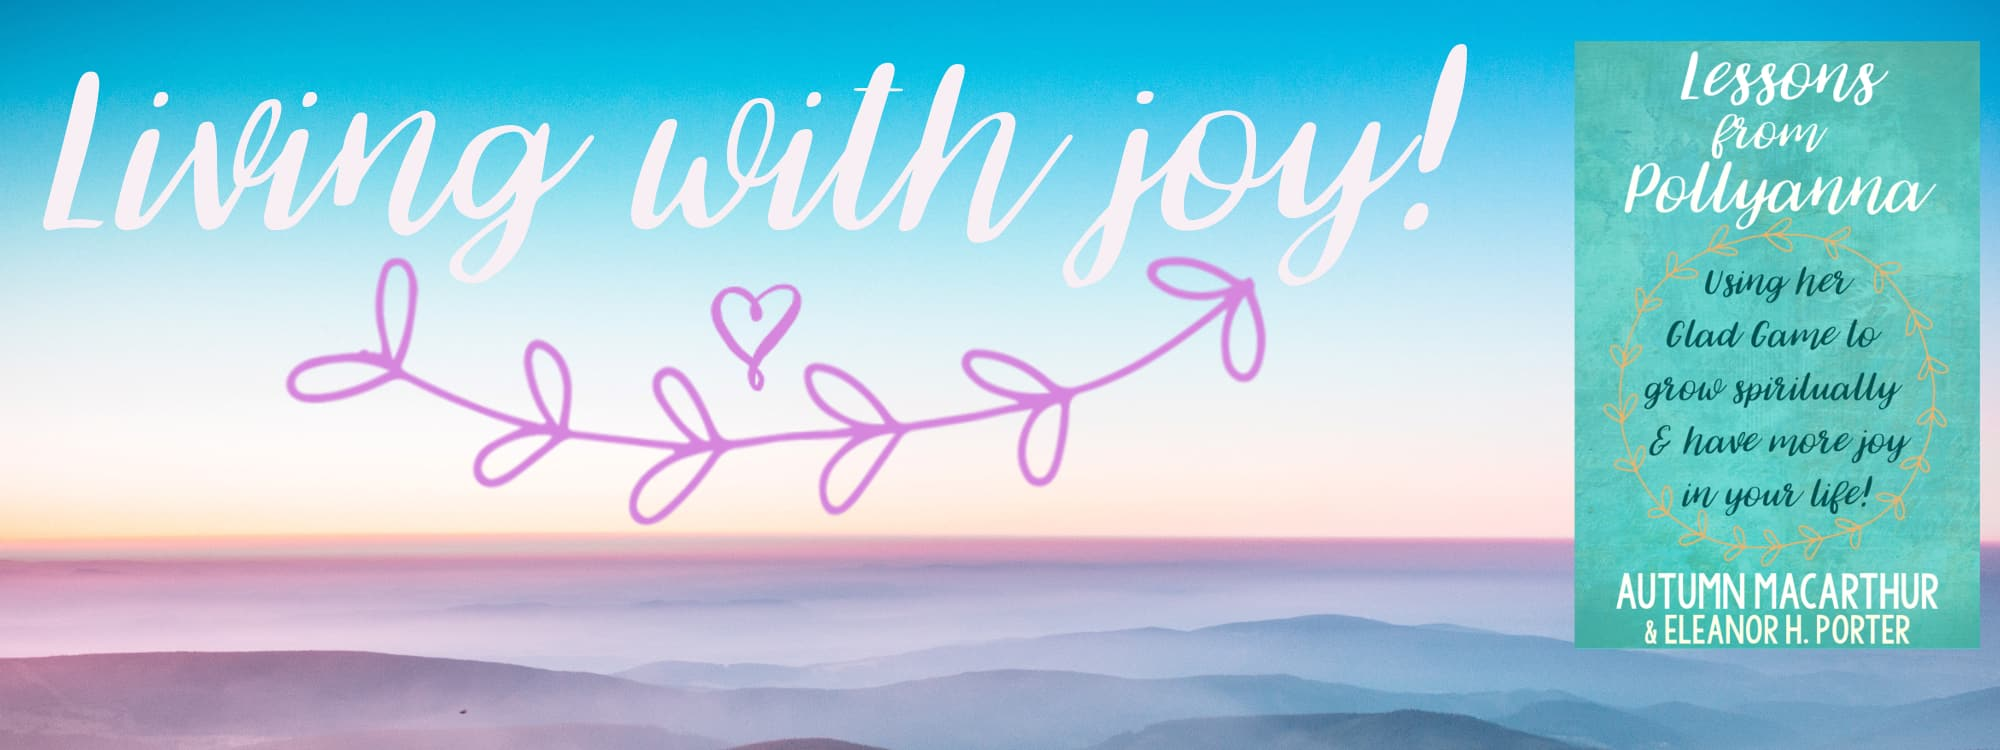 Living with joy with Lessons from Pollyanna by Autumn Macarthur